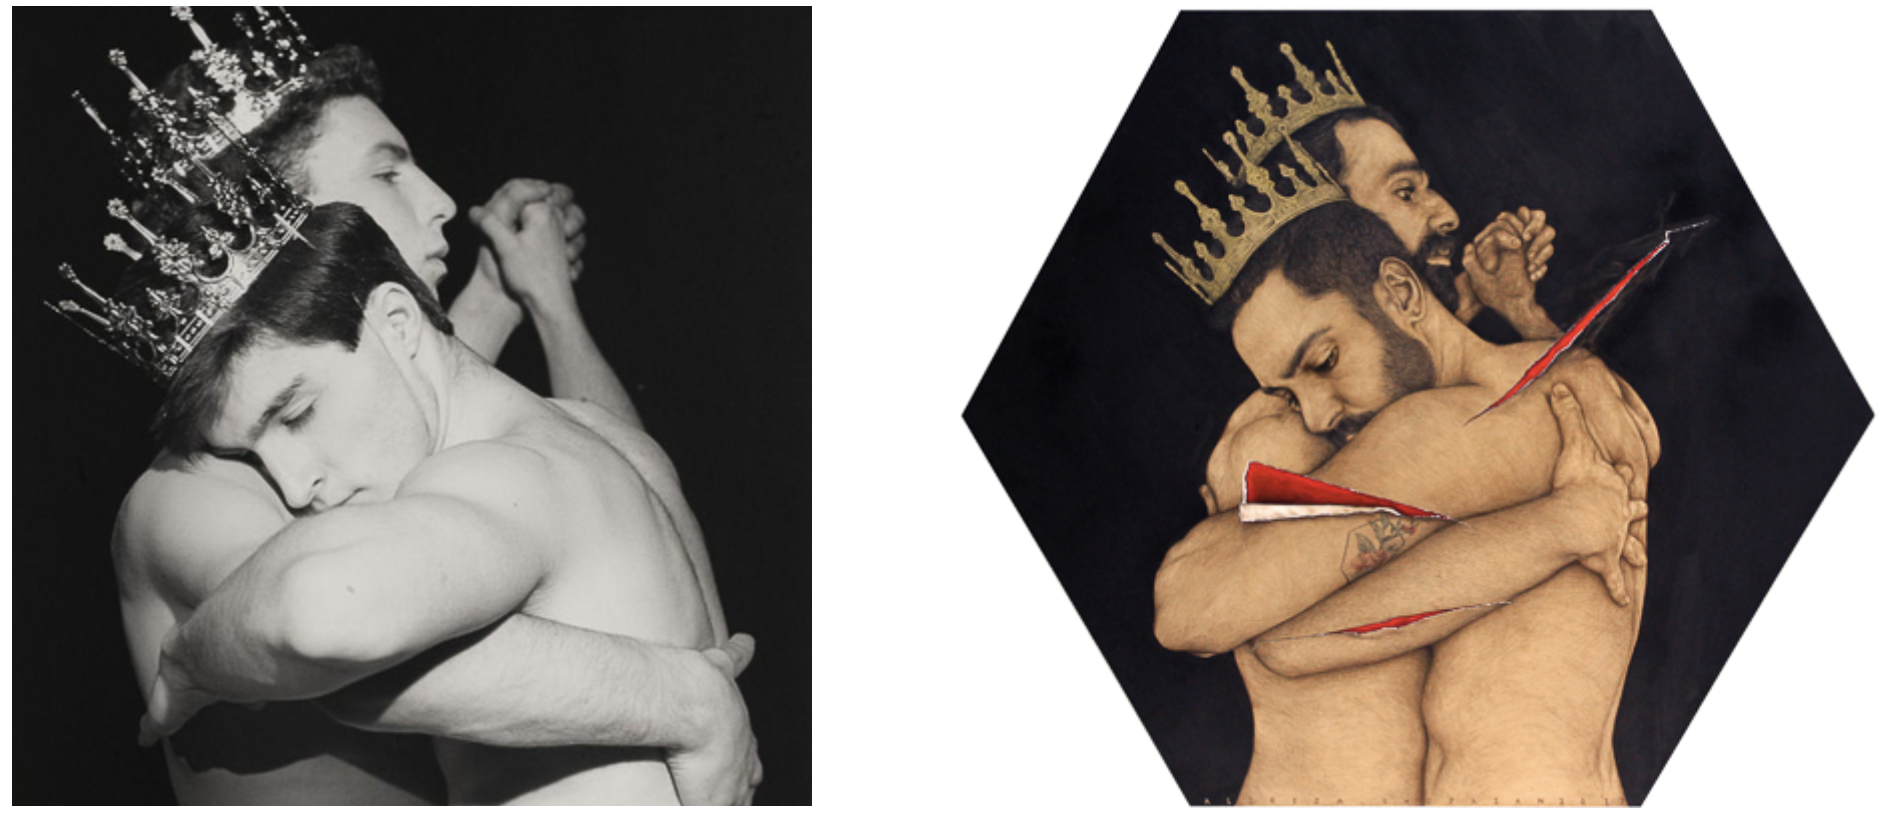 """Left: Mapplethorpe's  ' Two Men Dancing (1984)' , featured in a retrospective exhibition of his work titled 'The Perfect Moment', exhibited shortly before he succumbed to AIDS in 1989. Right: Shojaian's interpretation titled 'The Perfect Moment' aimed to challenge the audience on the concept of queerness and masculinities in the Middle Eastern context, """"I want to have a dialogue, to make this question mark for them, they are seeing two boys hugging""""."""